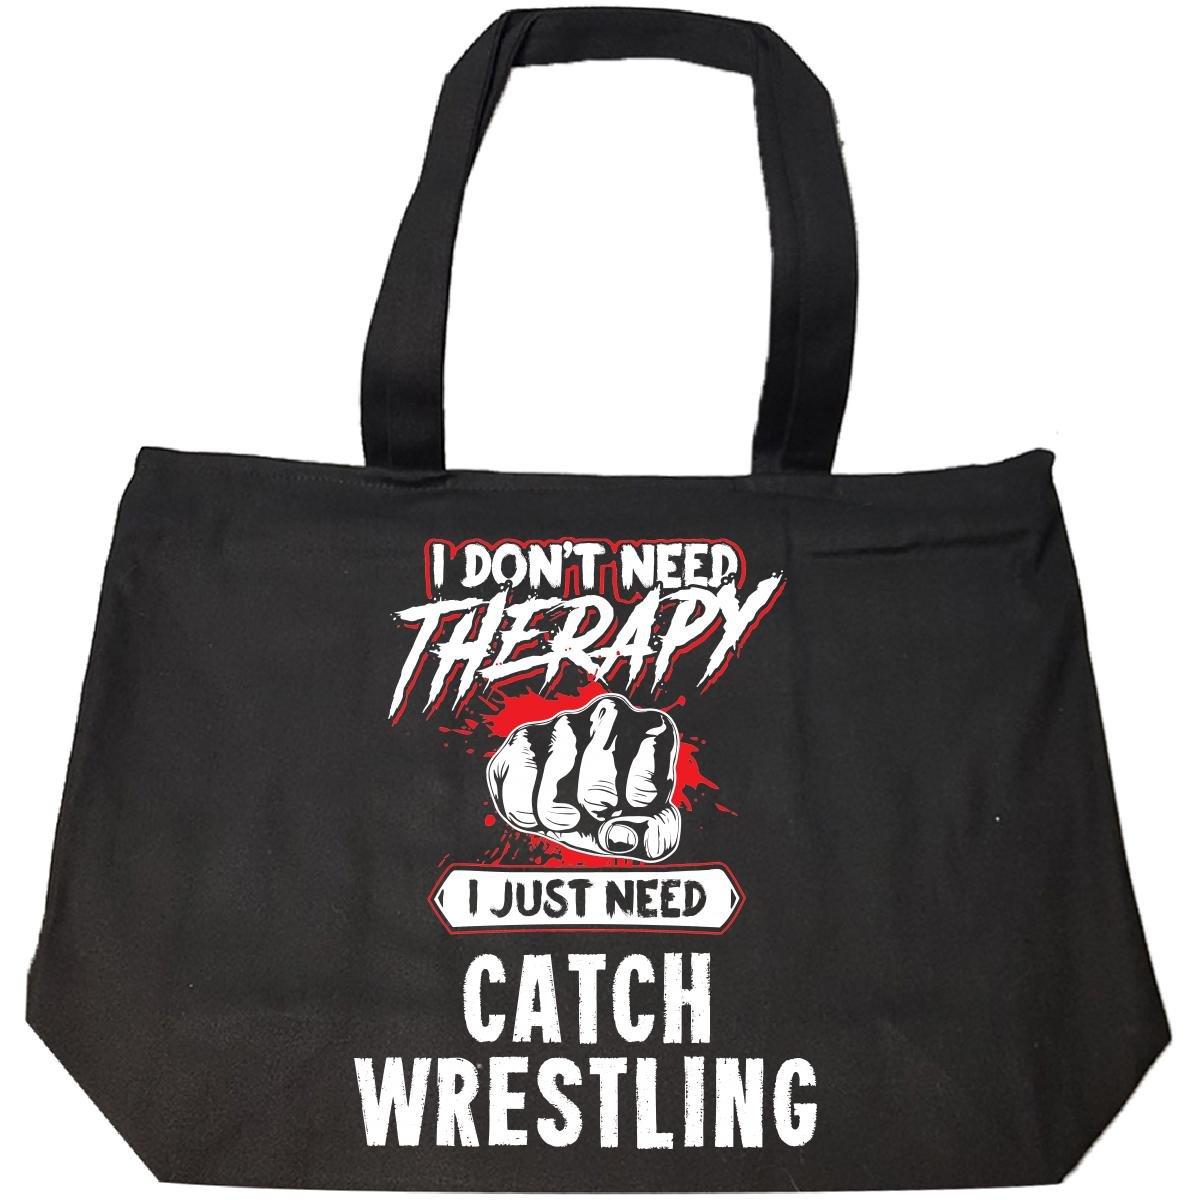 Don't Need Therapy Just Need Catch Wrestling Funny Mma Gift - Tote Bag With Zip